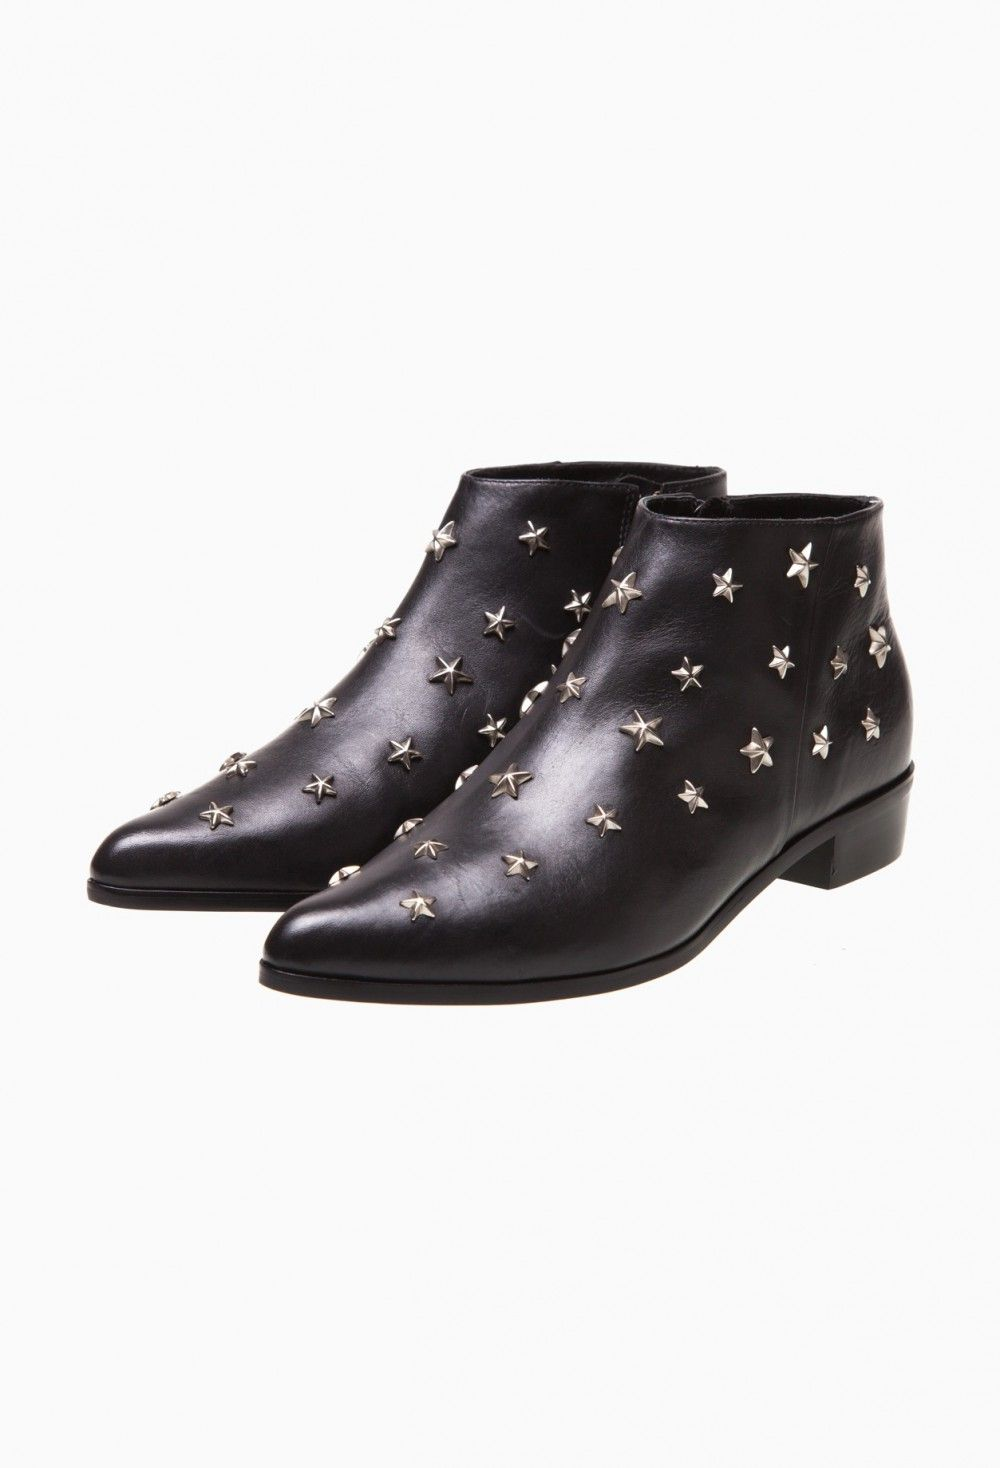 Claudie Pierlot Woman Studded Leather Ankle Boots Black Size 38 Claudie Pierlot Mxemn